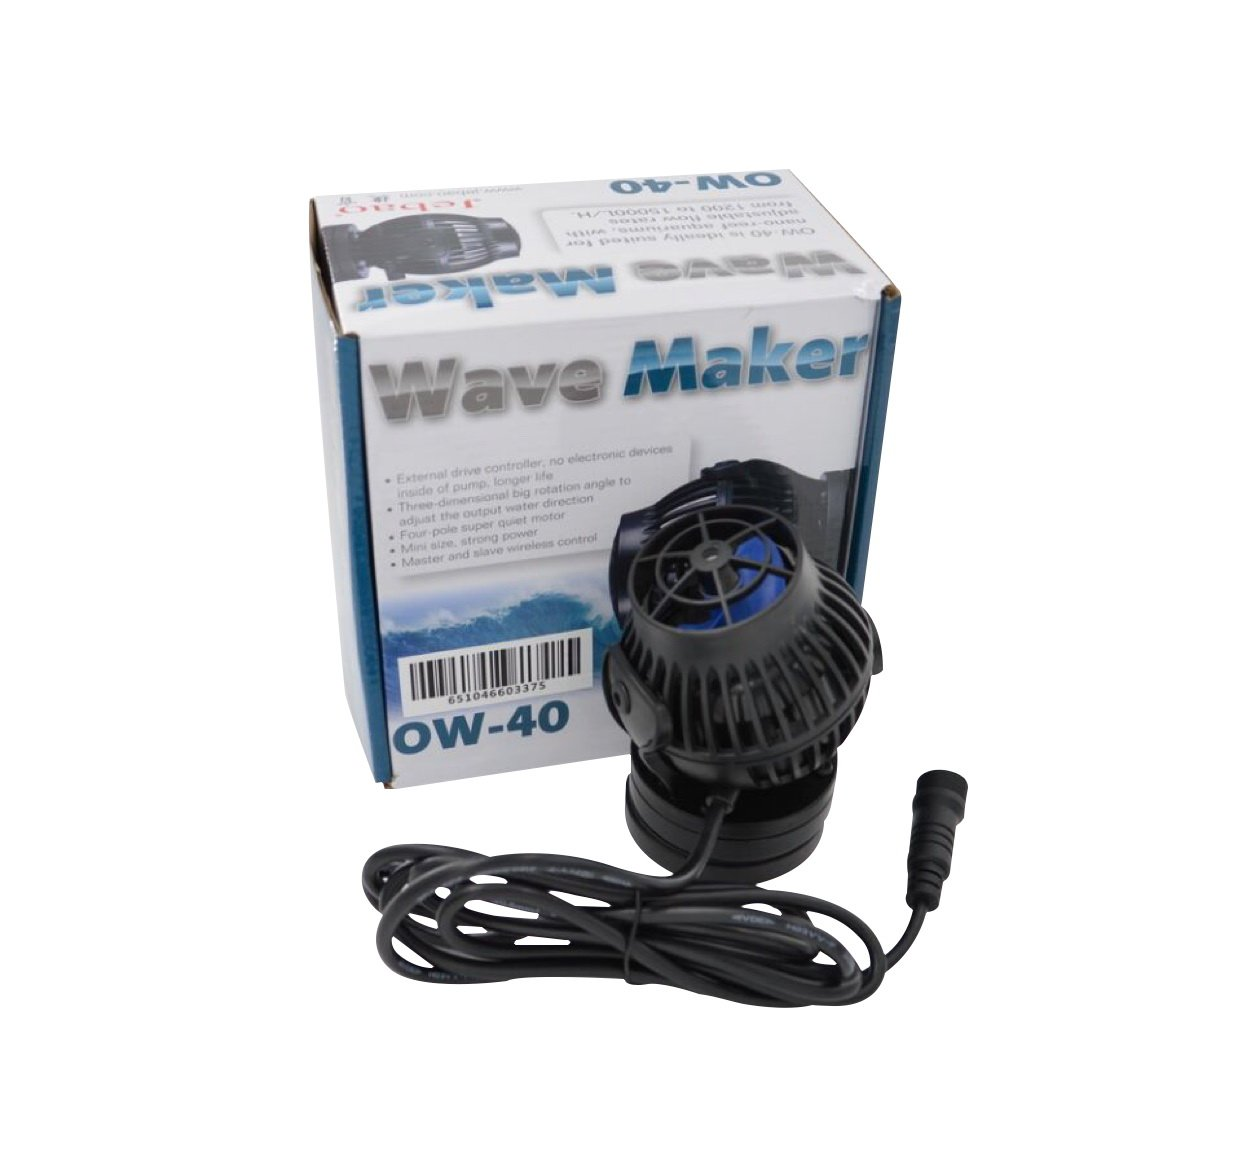 Jebao OW-40 Wavemaker 317-3963 gph with Controller and Magnet Mount